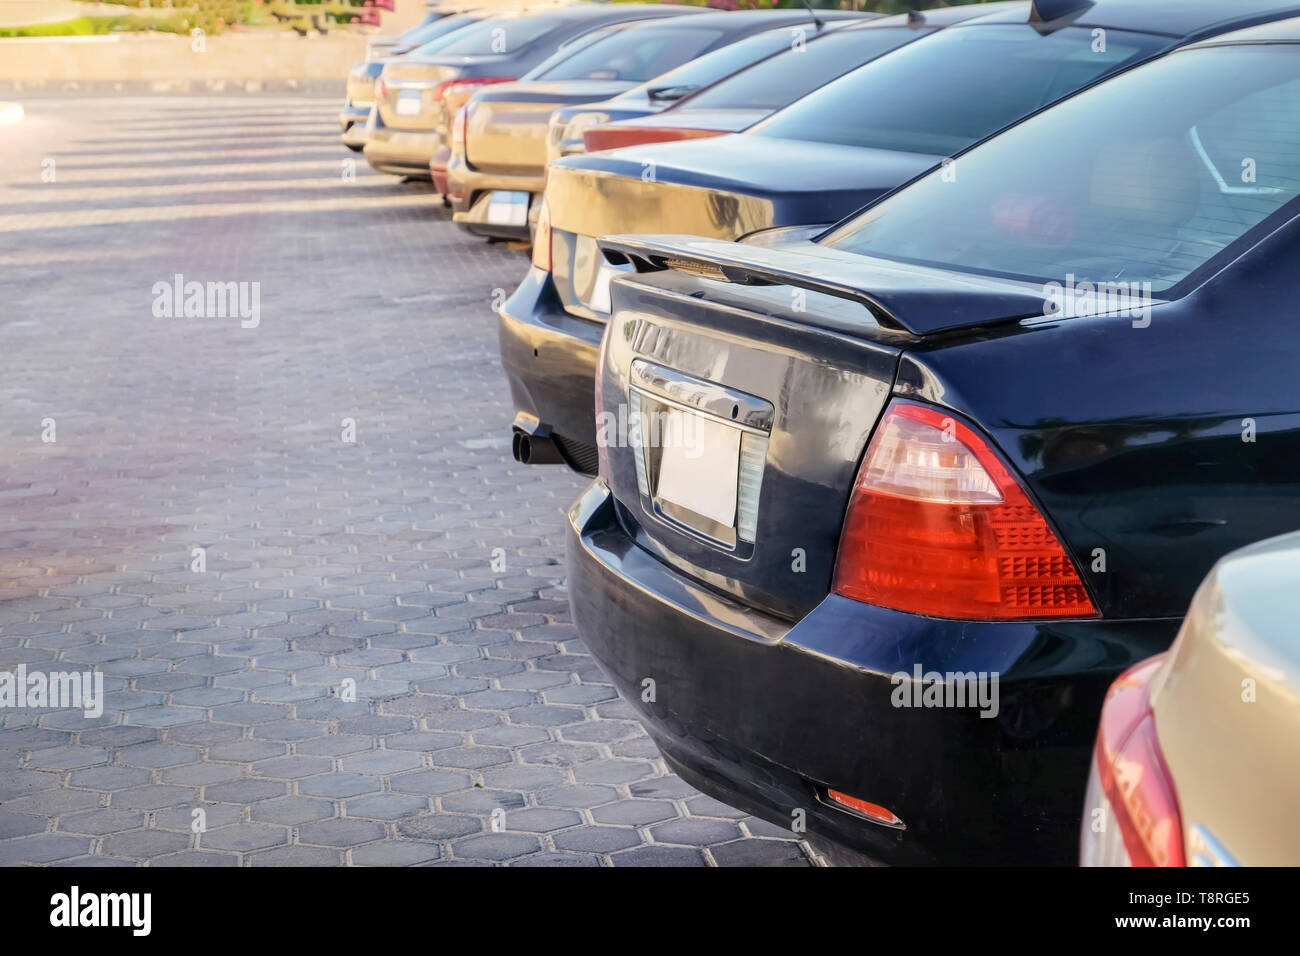 Row of parked cars on city street - Stock Image